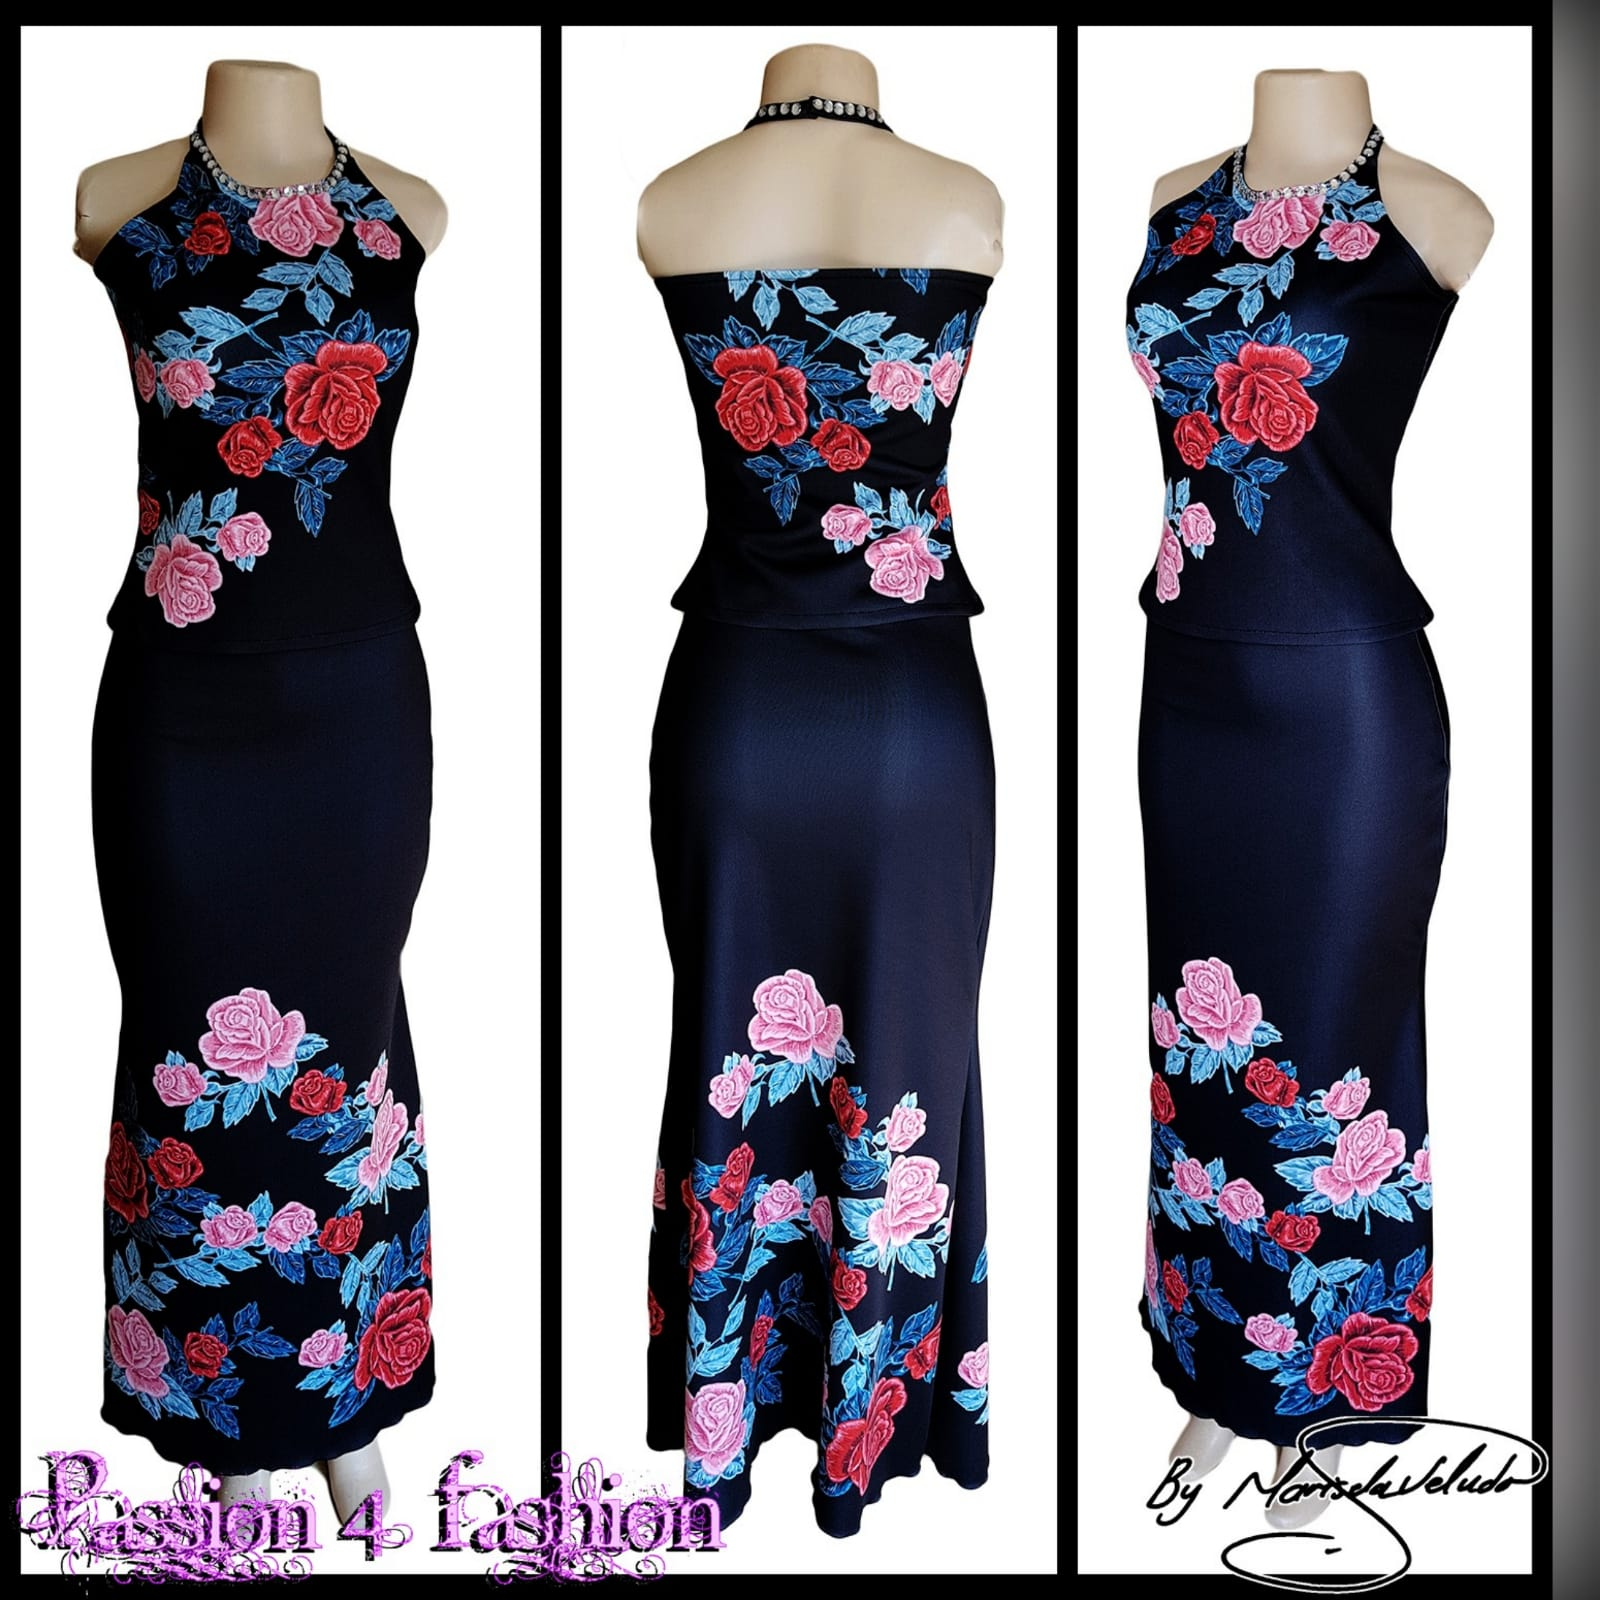 2 piece black floral evening wear 2 2 piece black floral evening wear with a fitted long skirt and halter neck top.